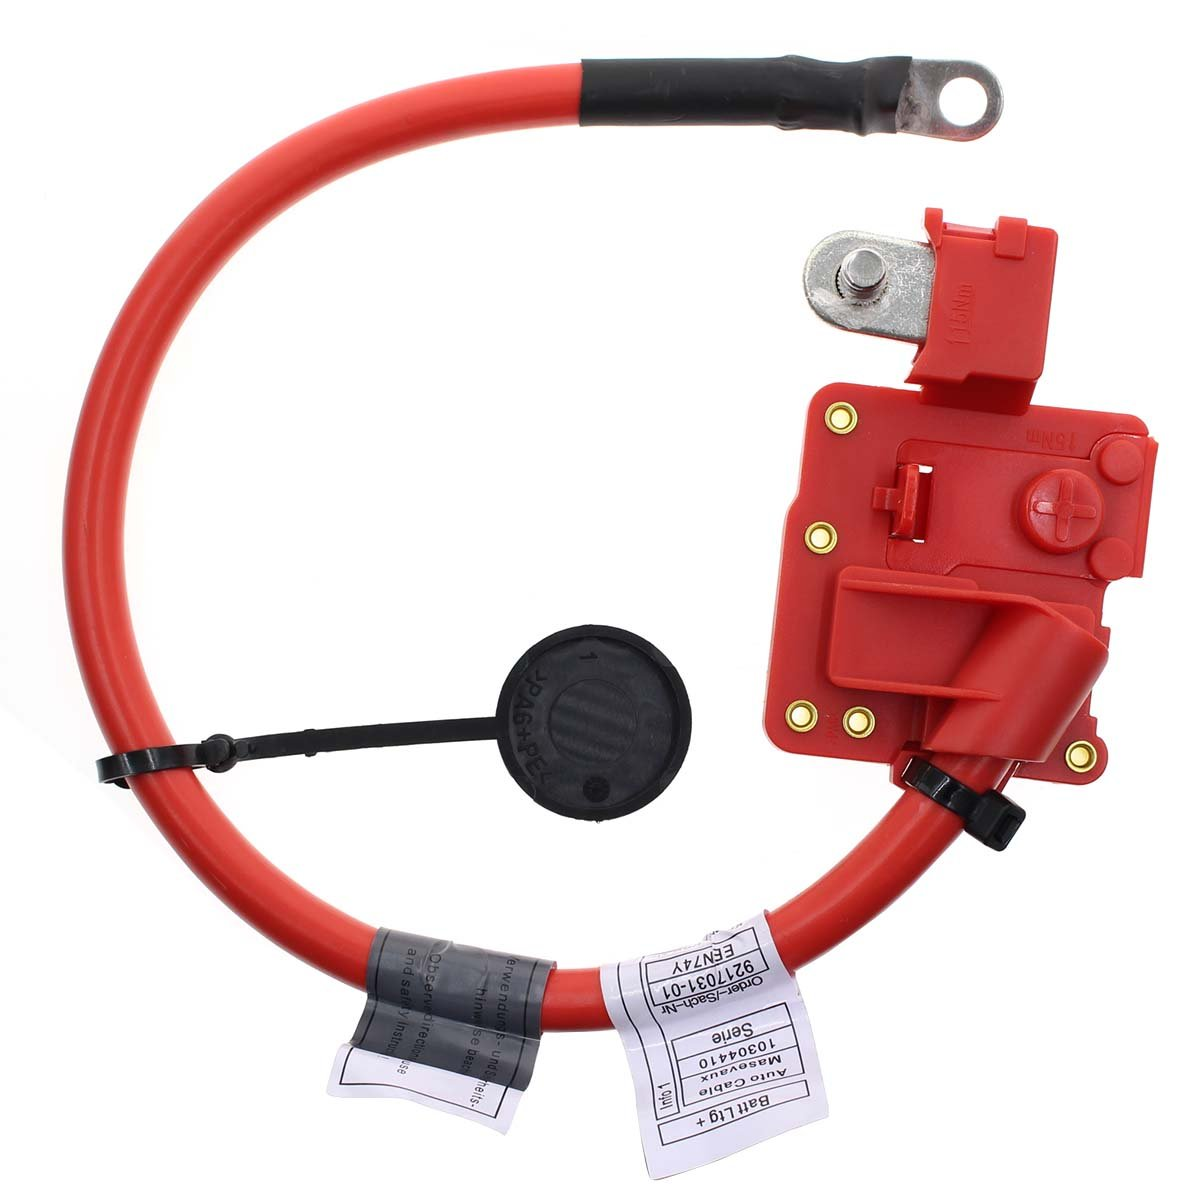 AUTOKAY Positive Terminal to Battery Cable Blow Off Cable Lead Wire Plus Pole for BMW E91 E90 Replaces 61129217031